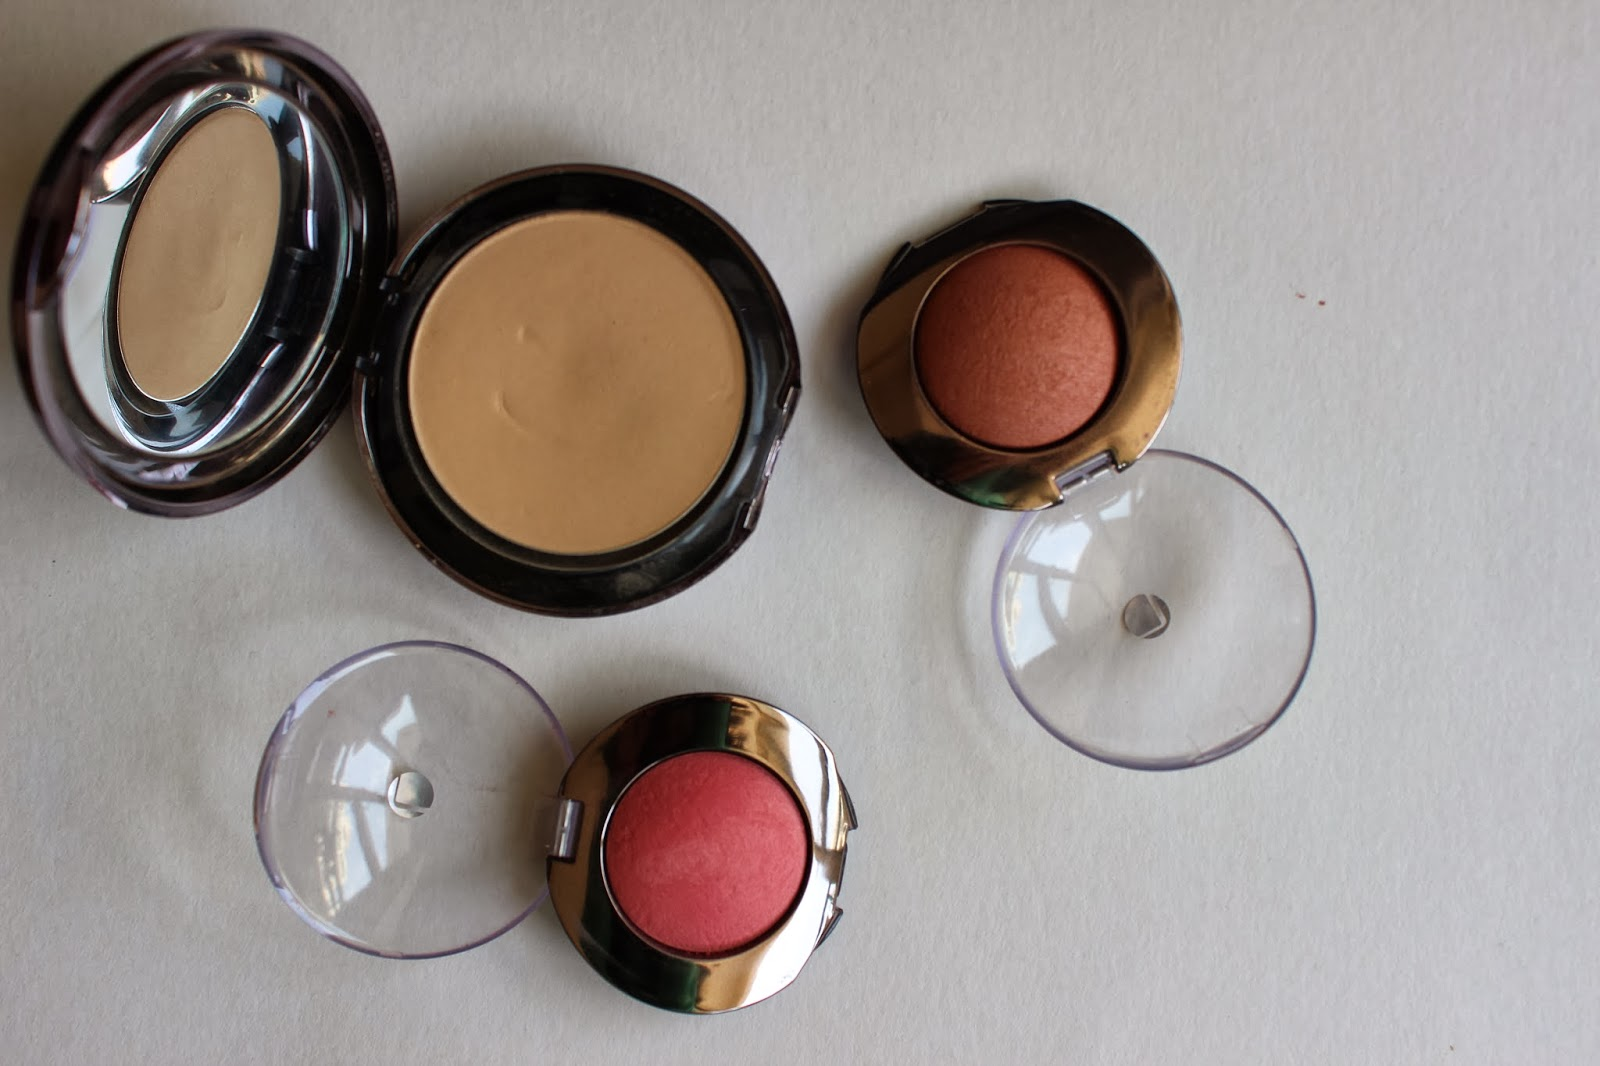 Lakme Compact Spring Summer 2014 Beauty